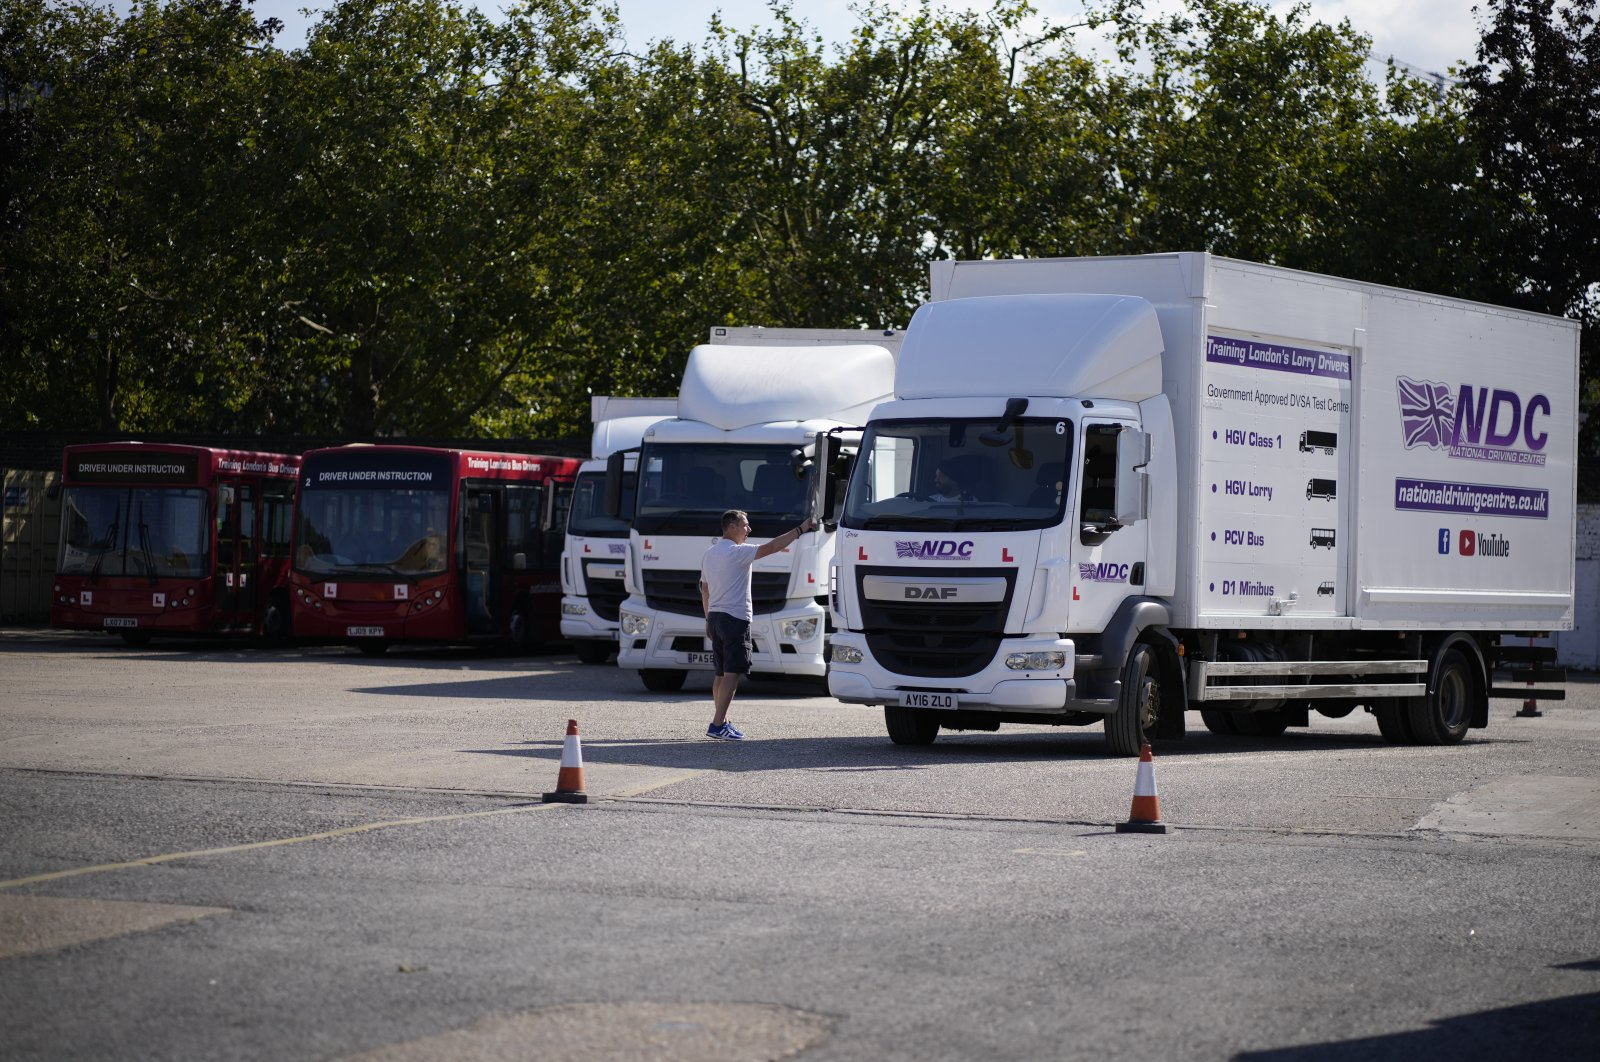 An instructor directs a learner truck driver at the National Driving Centre in Croydon, south London, U.K., Sept. 22, 2021. (AP Photo)